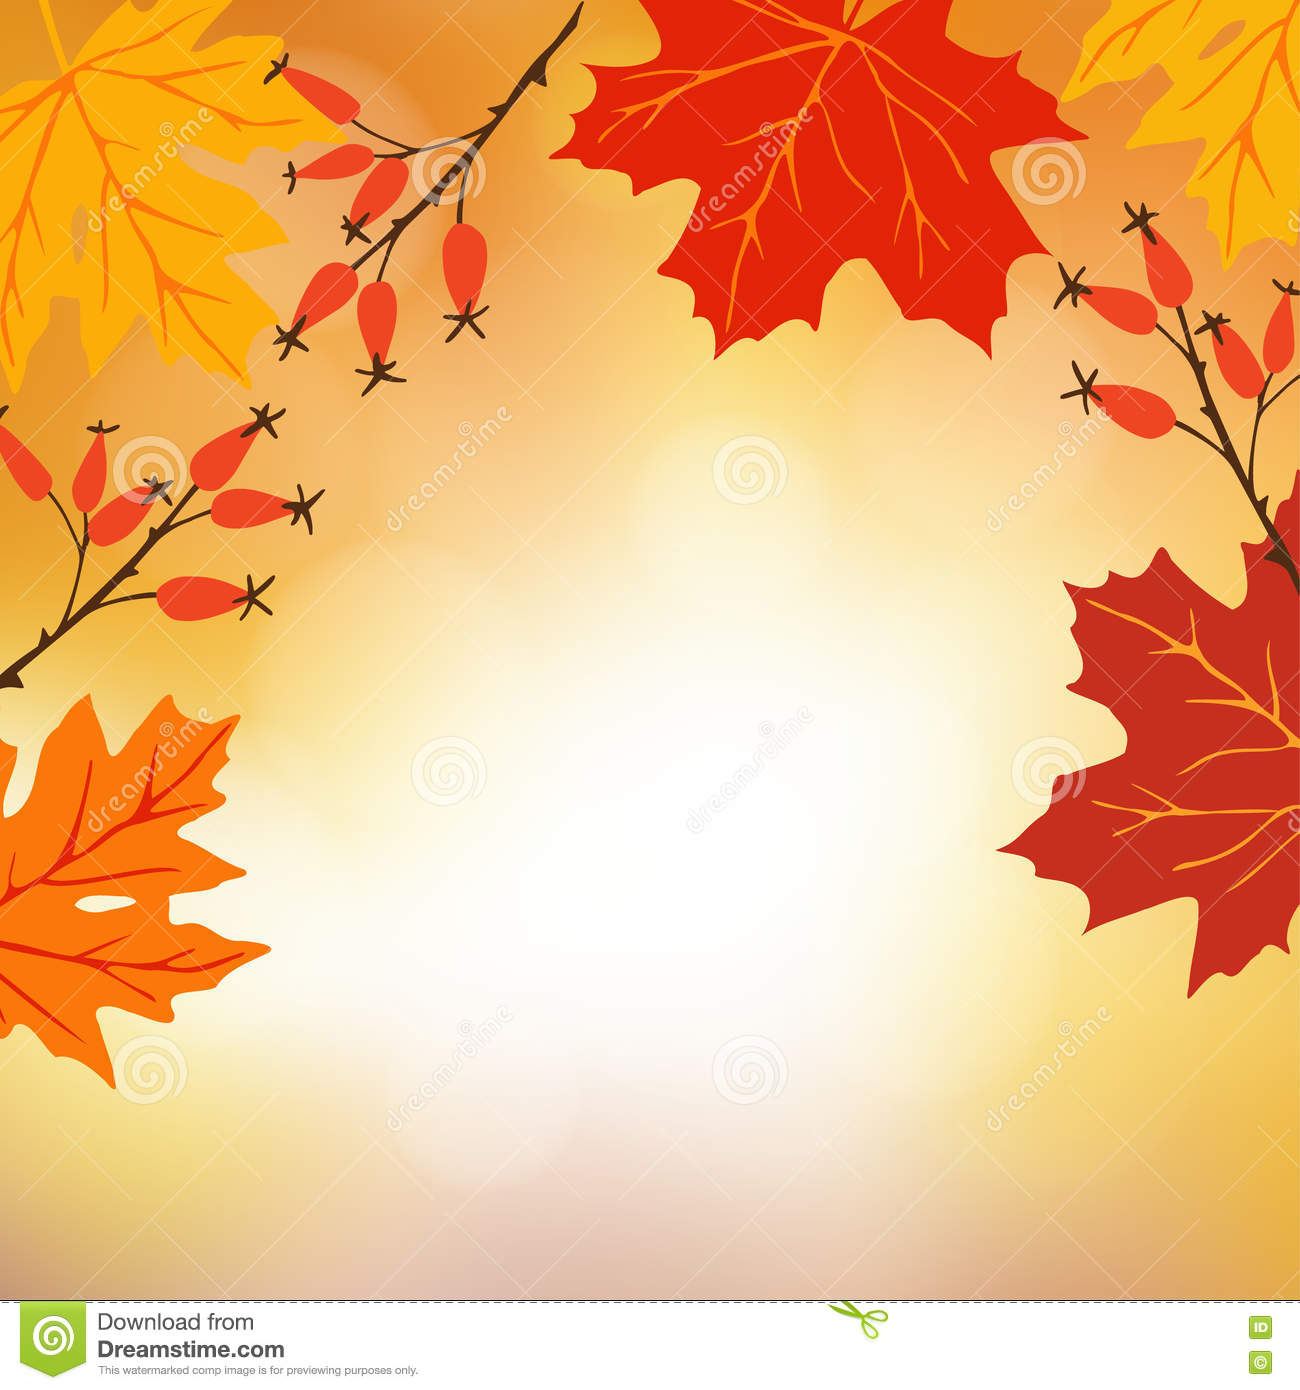 Falling Maple Leaves Wallpaper Autumn Fall Background Greeting Card With Hand Drawn